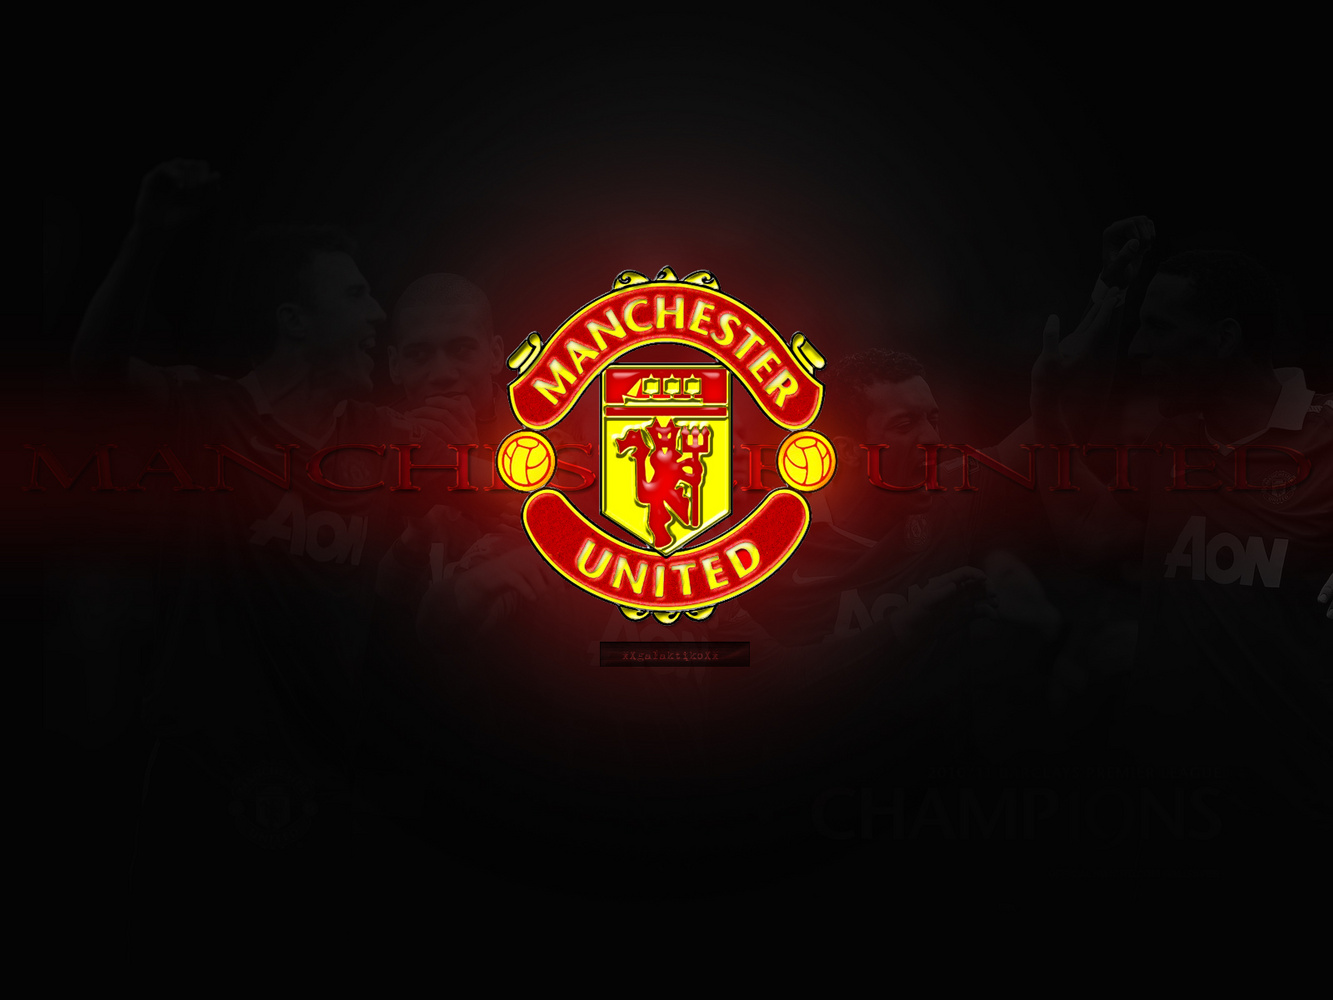 wallpapers hd for mac manchester united logo wallpapers wallpapers hd for mac blogger